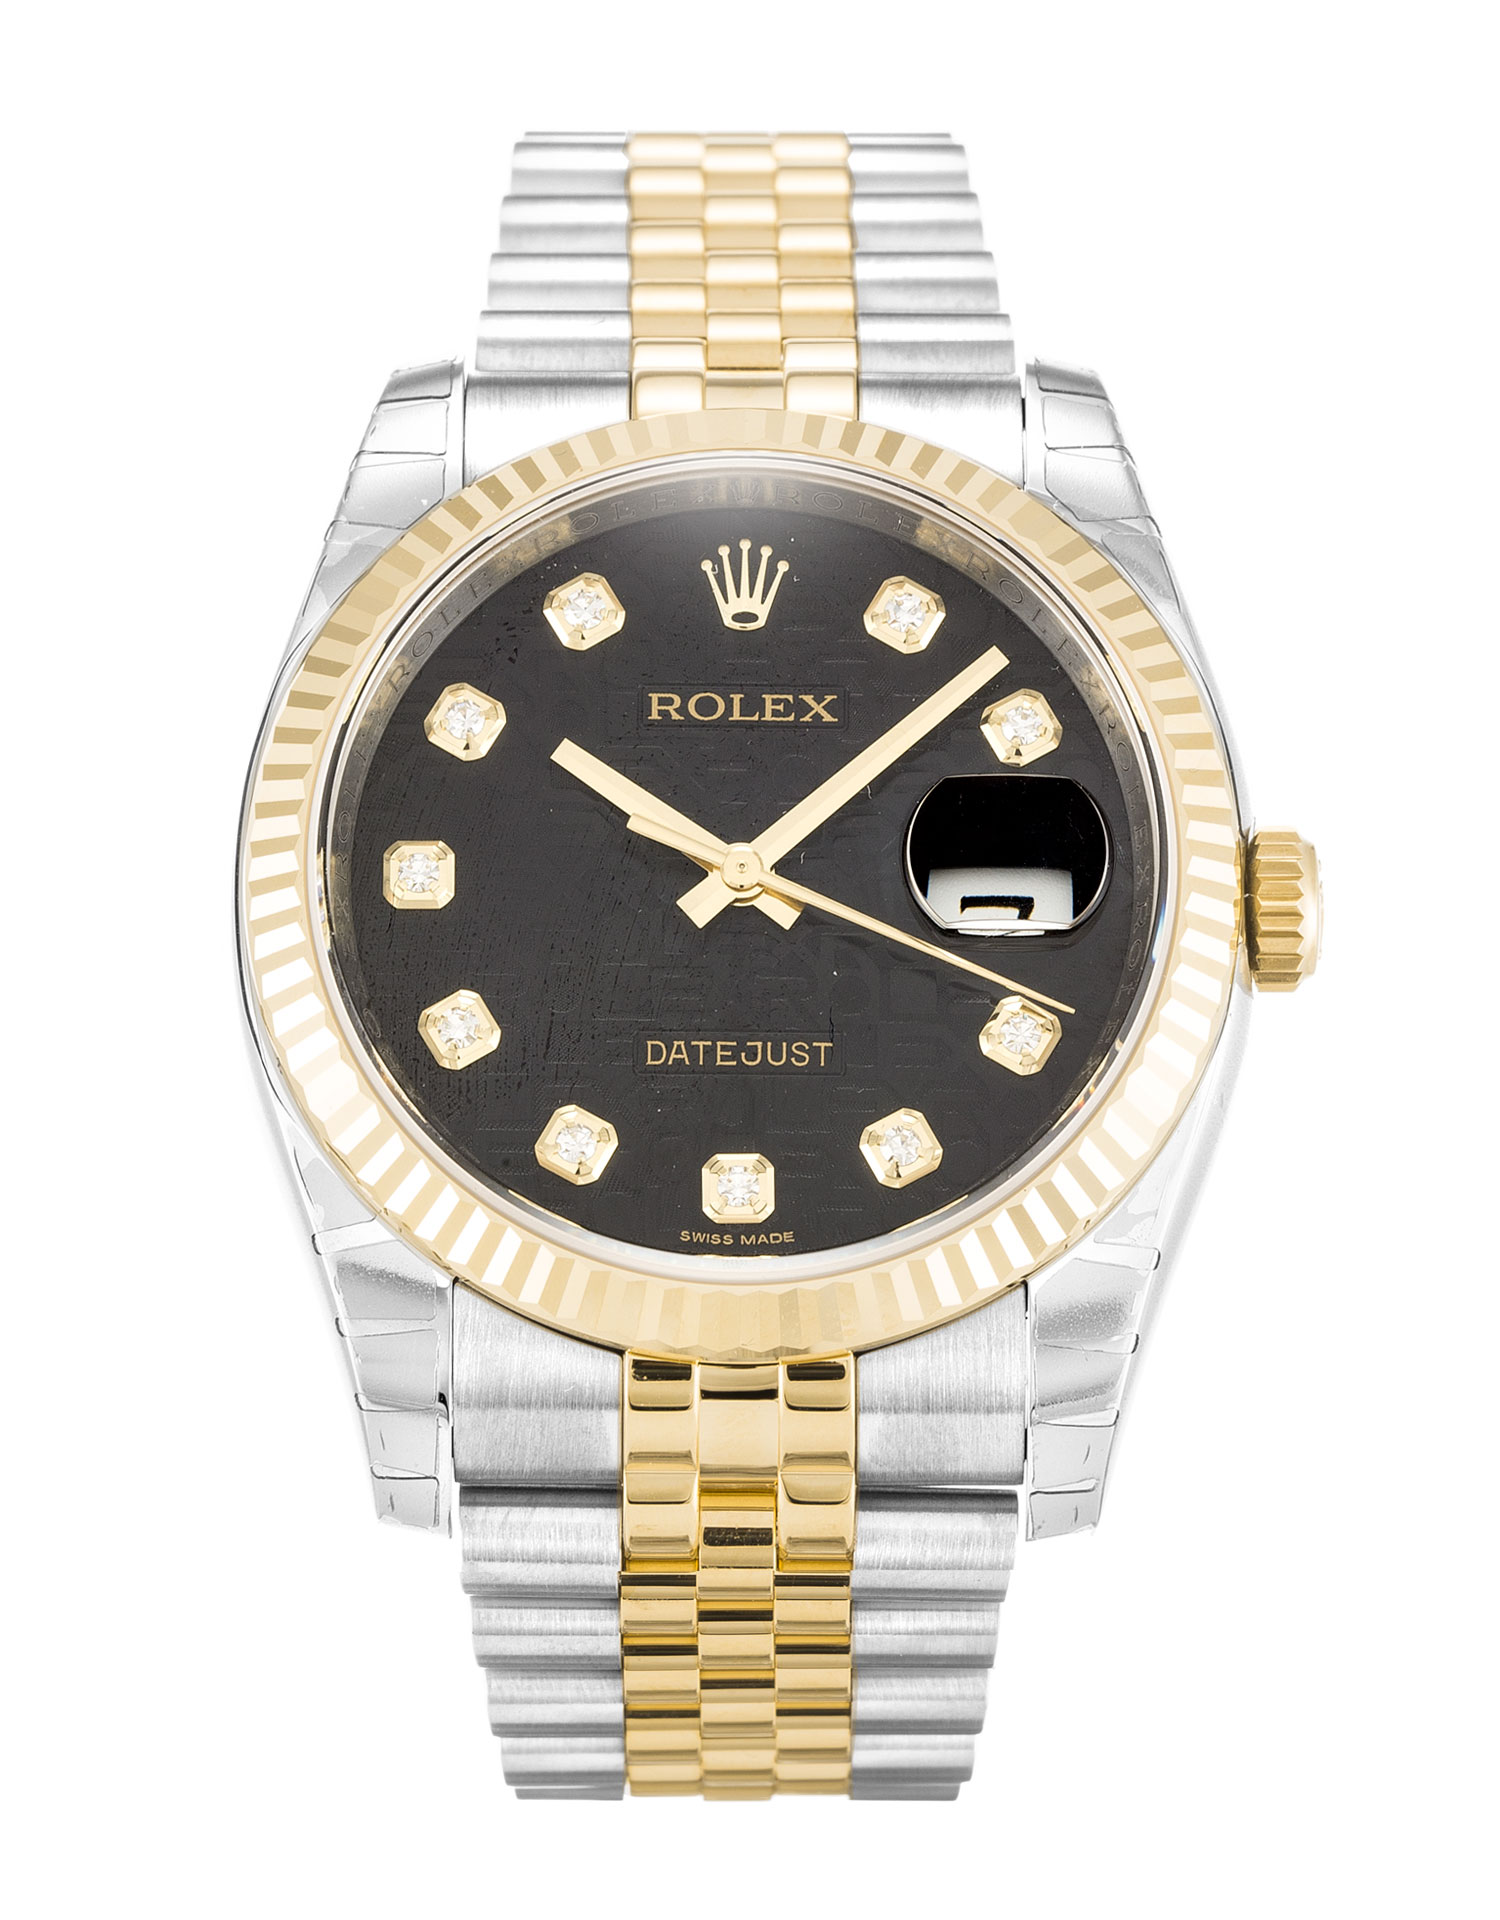 Rolex Datejust 116233 Mens 36 Mm Steel & Yellow Gold Case Automatic Movement – iapac.to